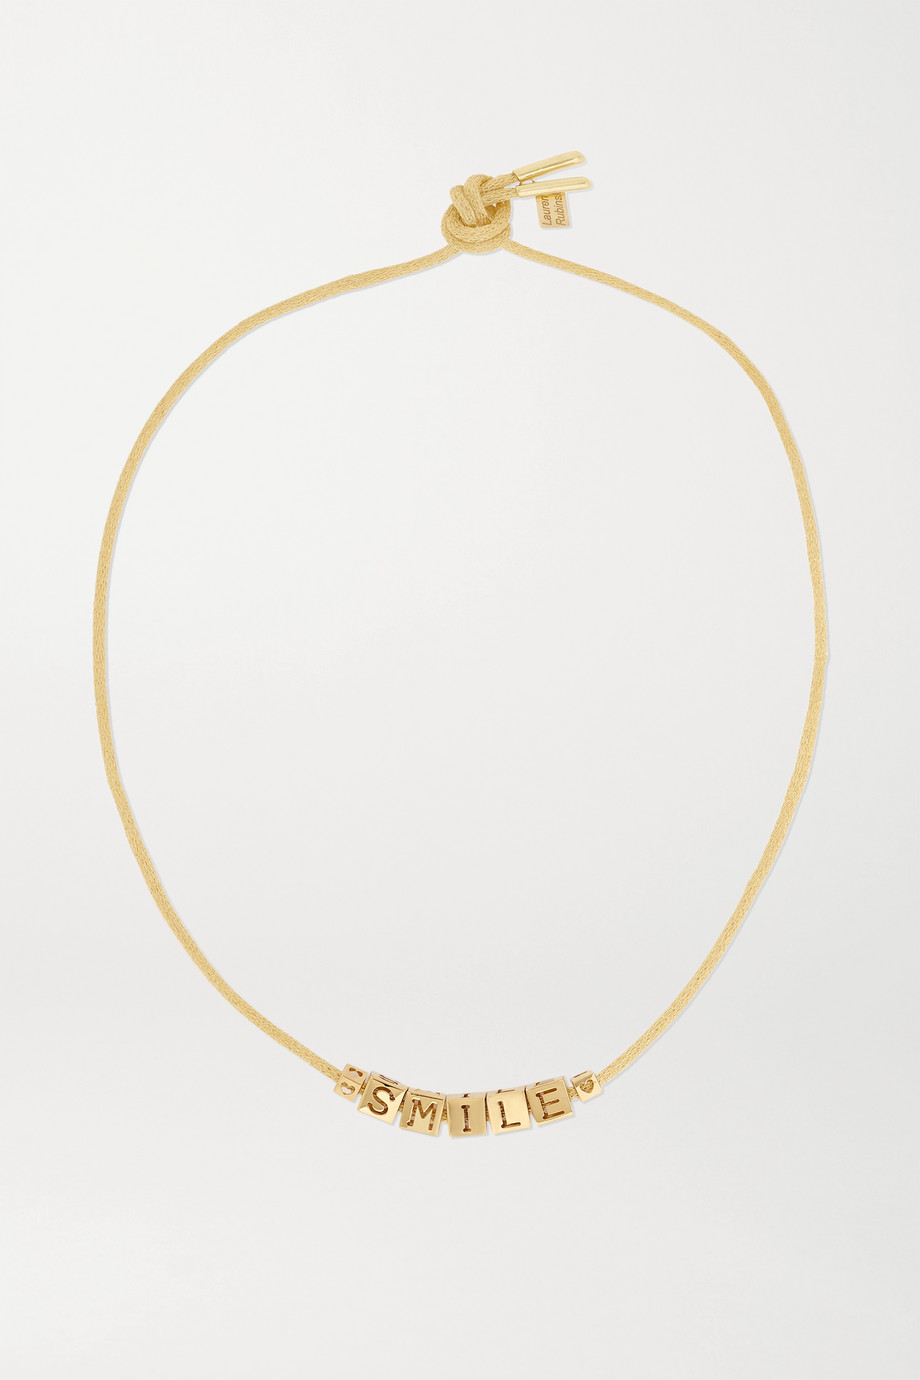 LAUREN RUBINSKI Smile 14-karat gold necklace